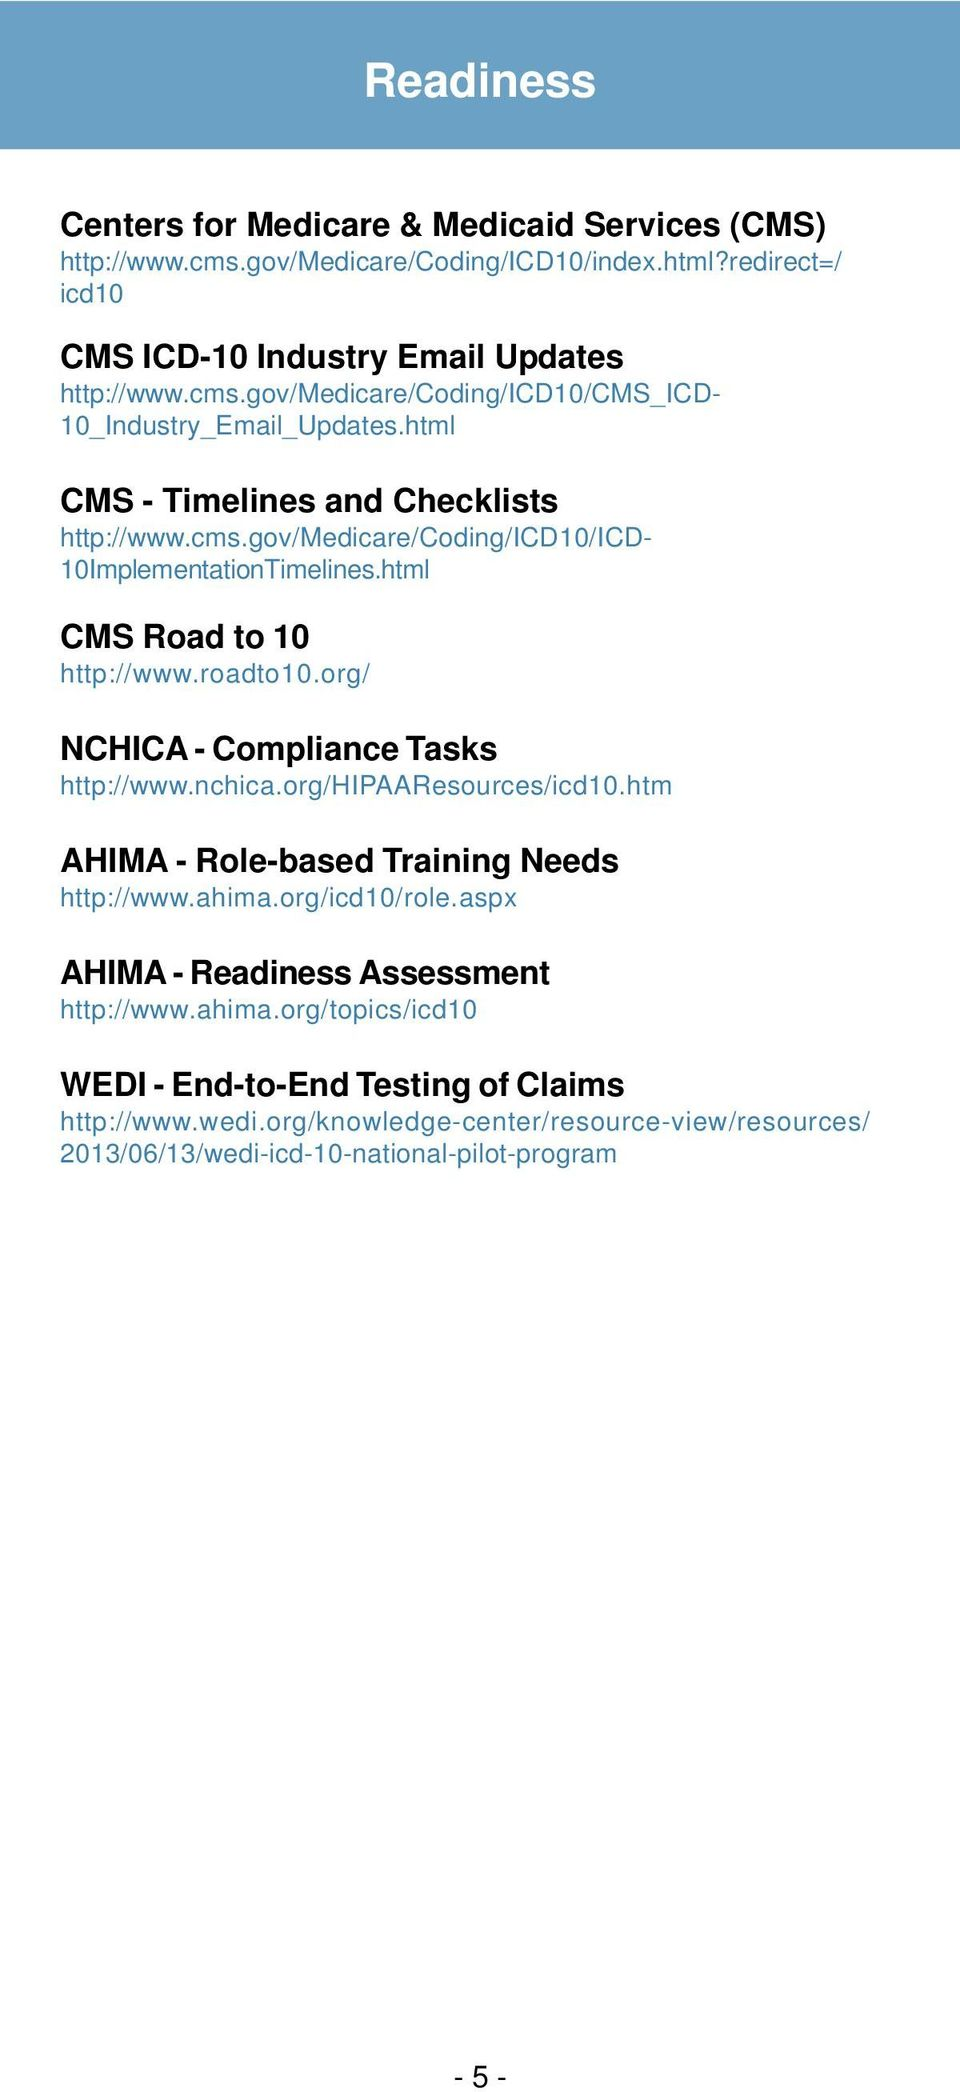 org/ NCHICA - Compliance Tasks http://www.nchica.org/hipaaresources/icd10.htm AHIMA - Role-based Training Needs http://www.ahima.org/icd10/role.